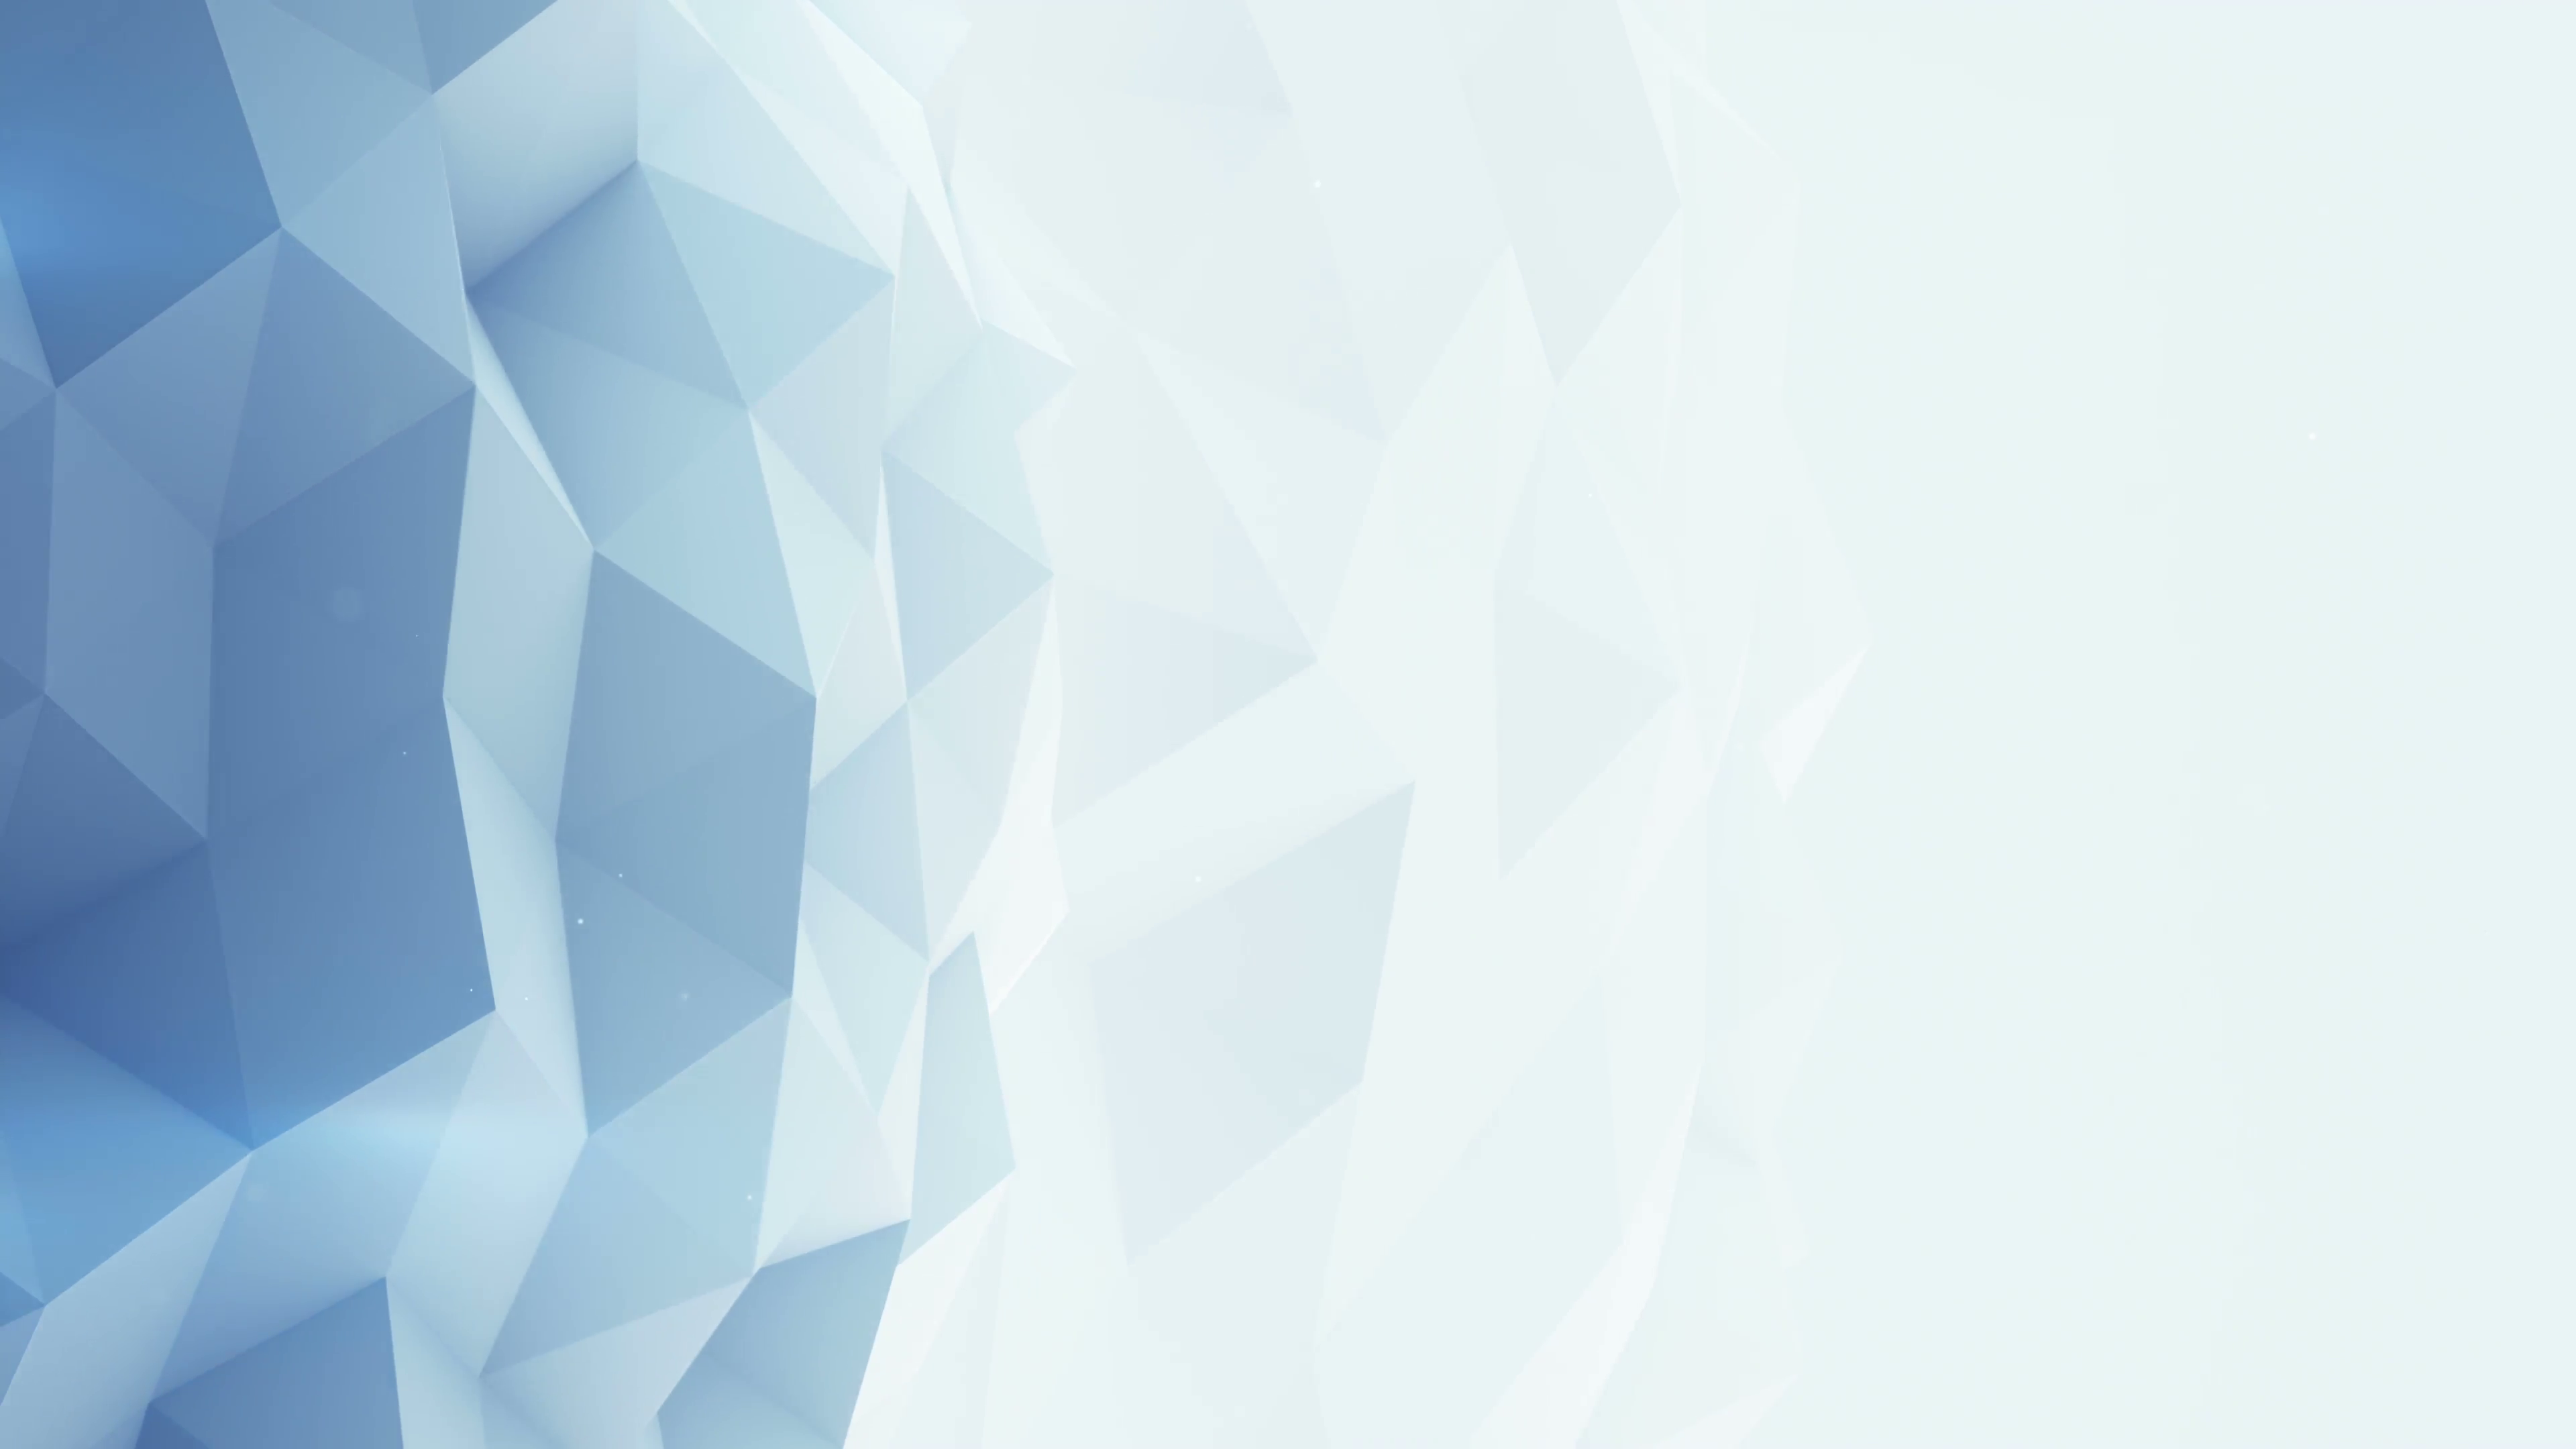 Light blue polygonal background seamles loop 3D render 4k UHD (3840x2160)  Motion Background.